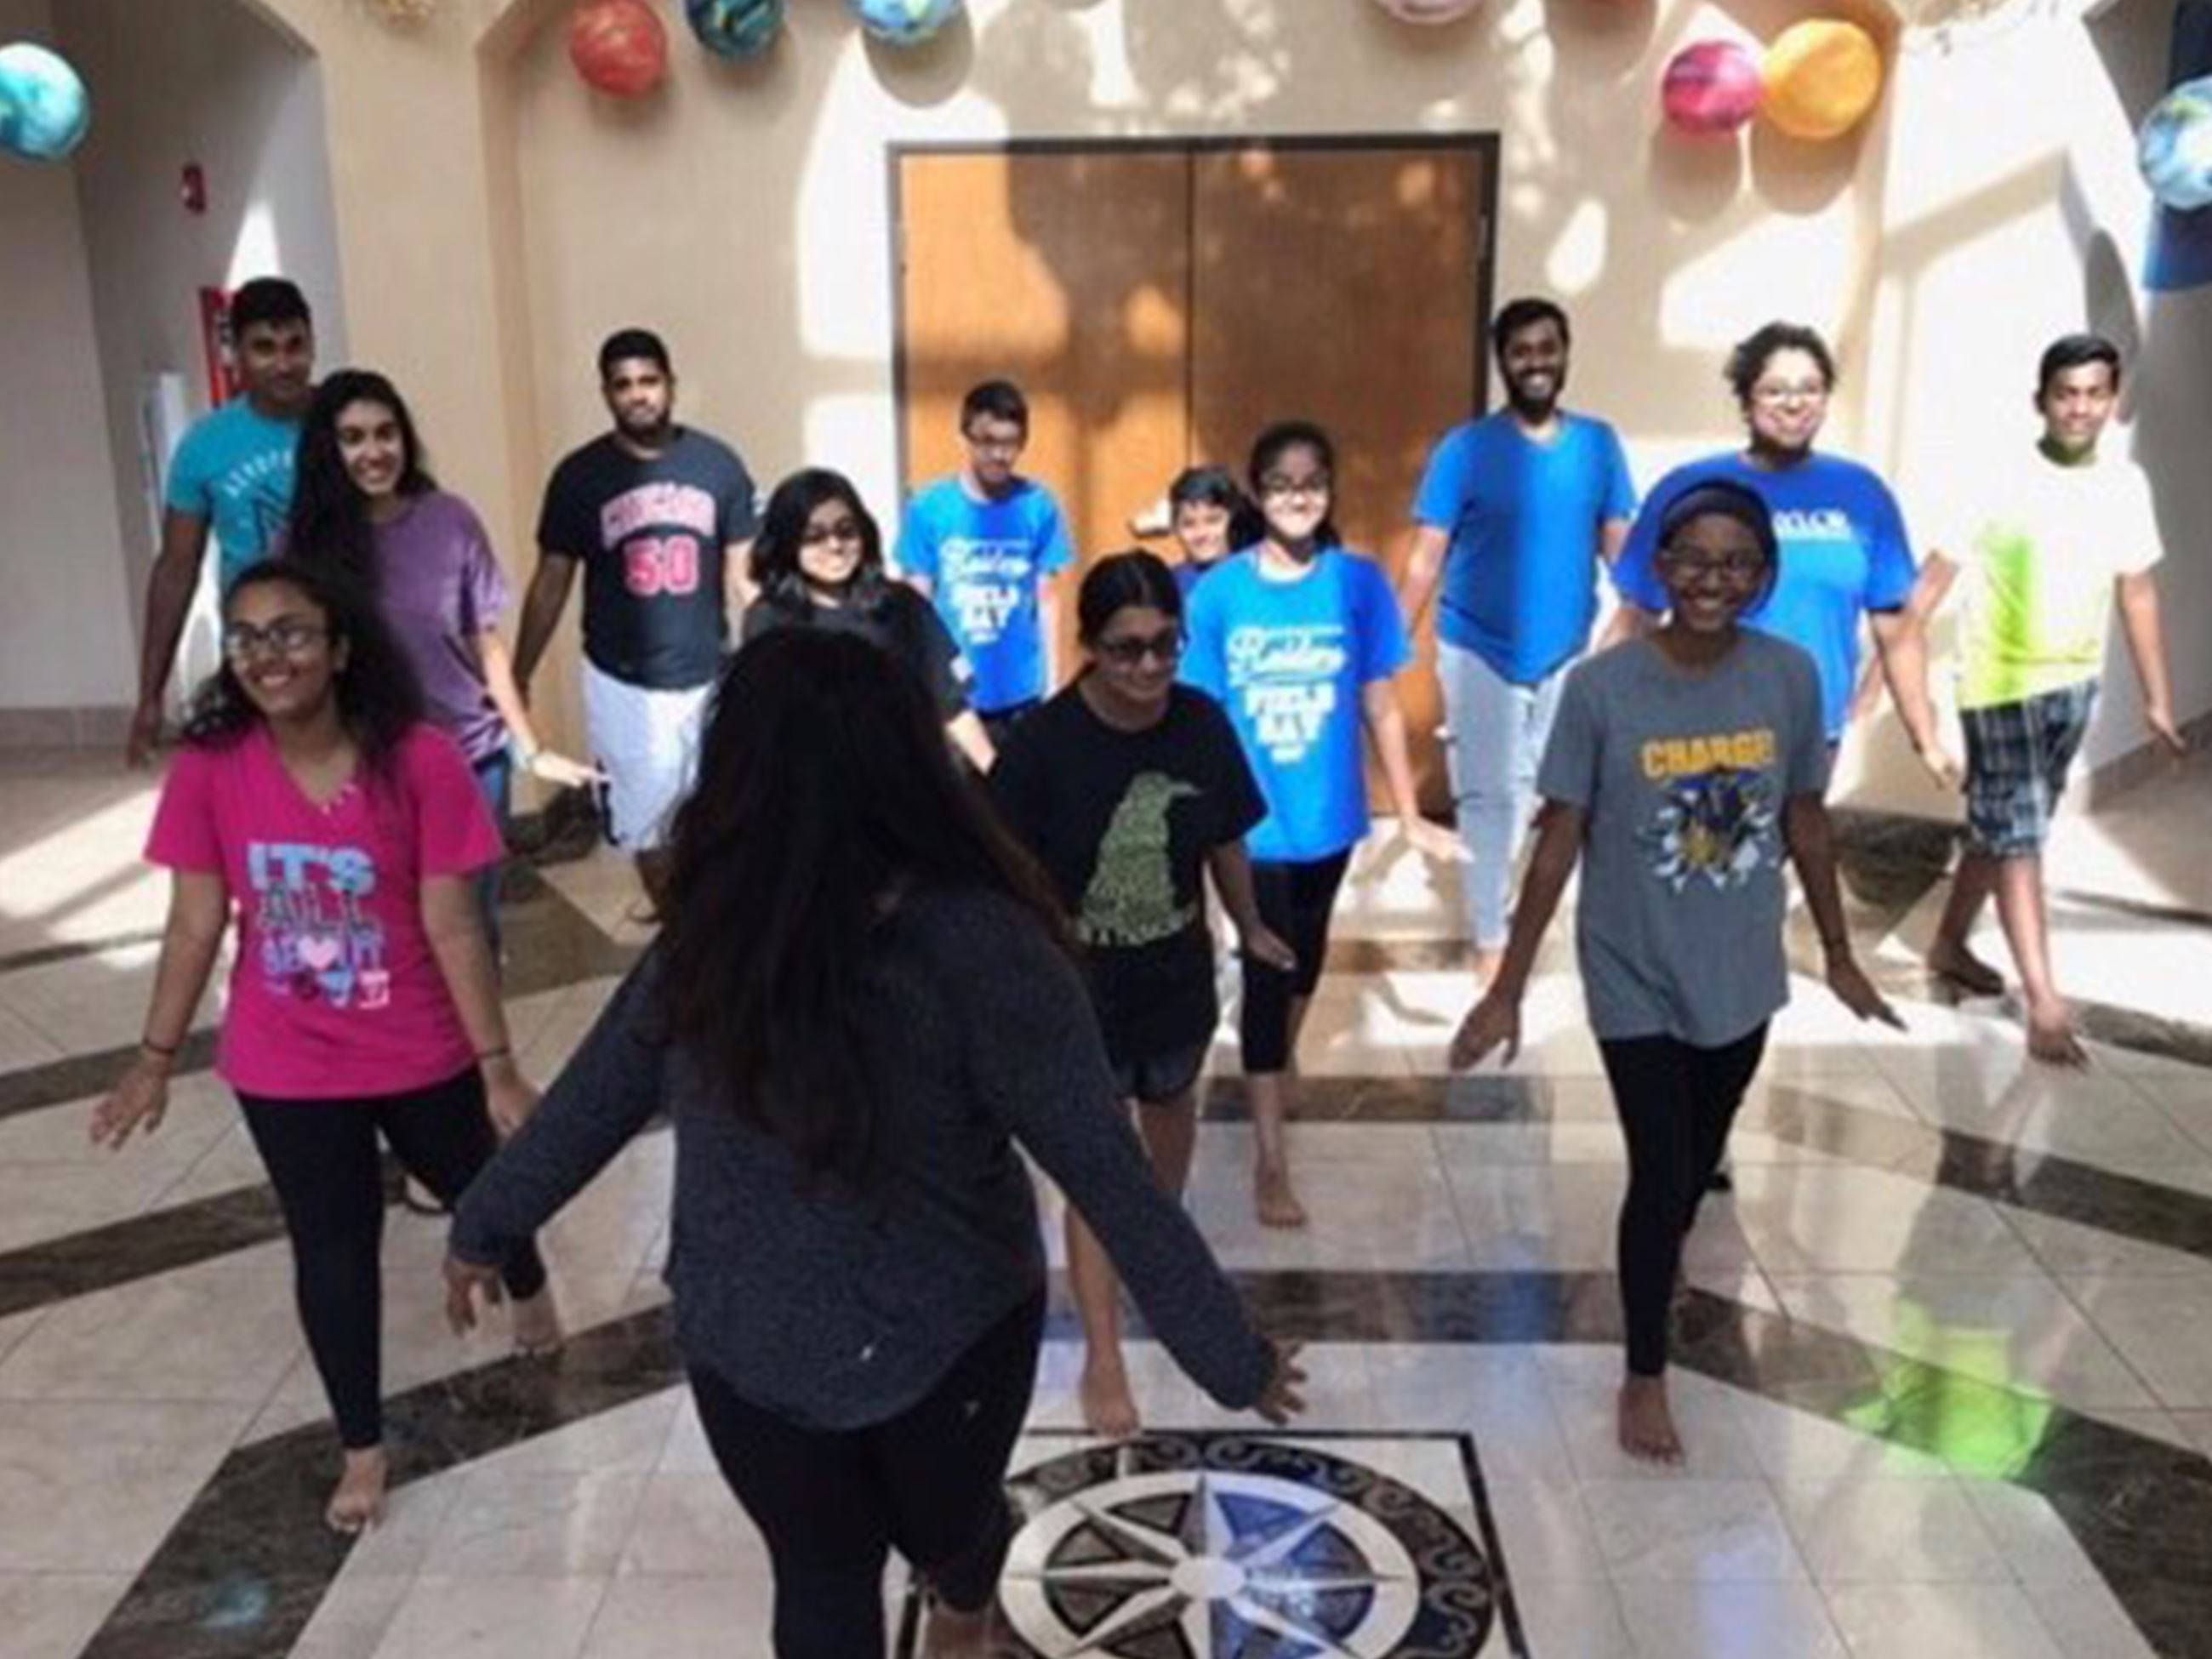 People participating in Bollywood Dance Fitness